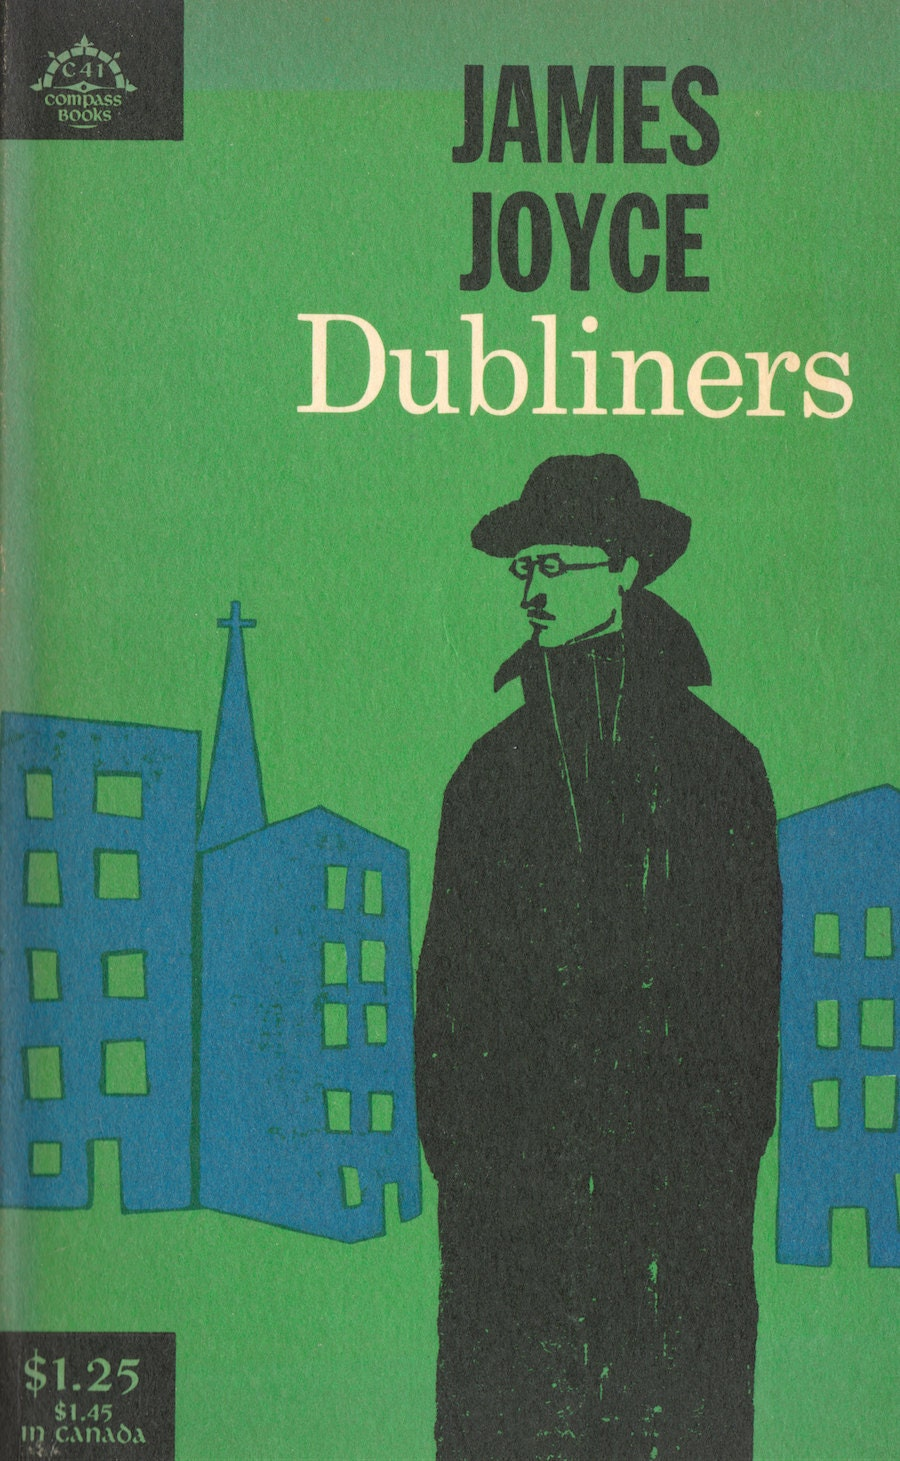 a report on the dubliners by james joyce In the dead by james joyce we have the theme of mortality, connection, failure, politics, religion and paralysis taken from his dubliners collection the.